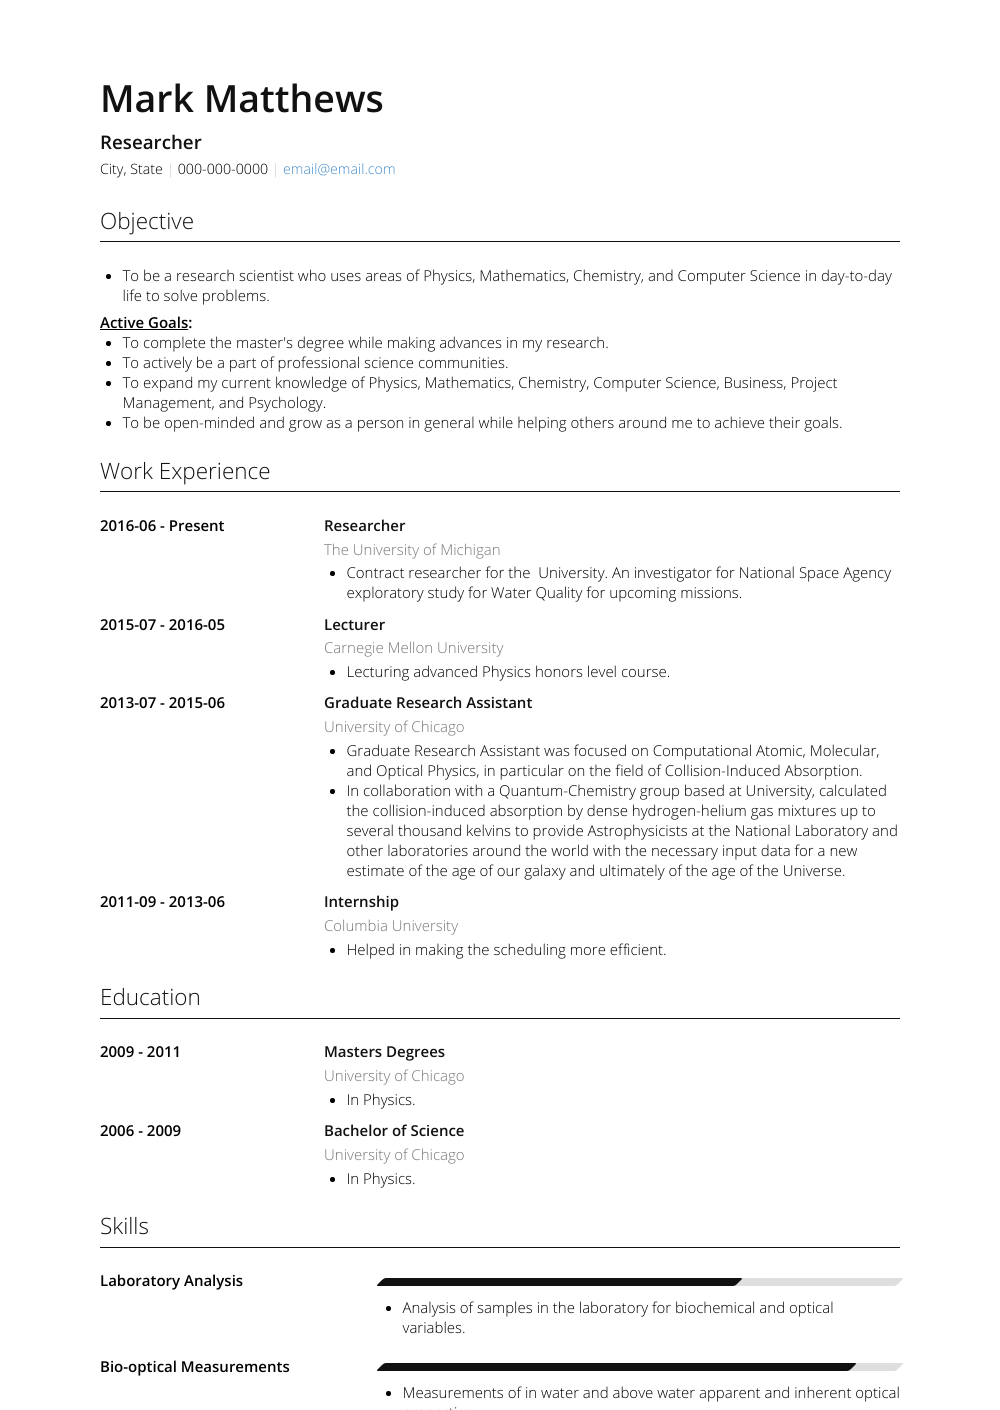 Researcher Resume Sample and Template